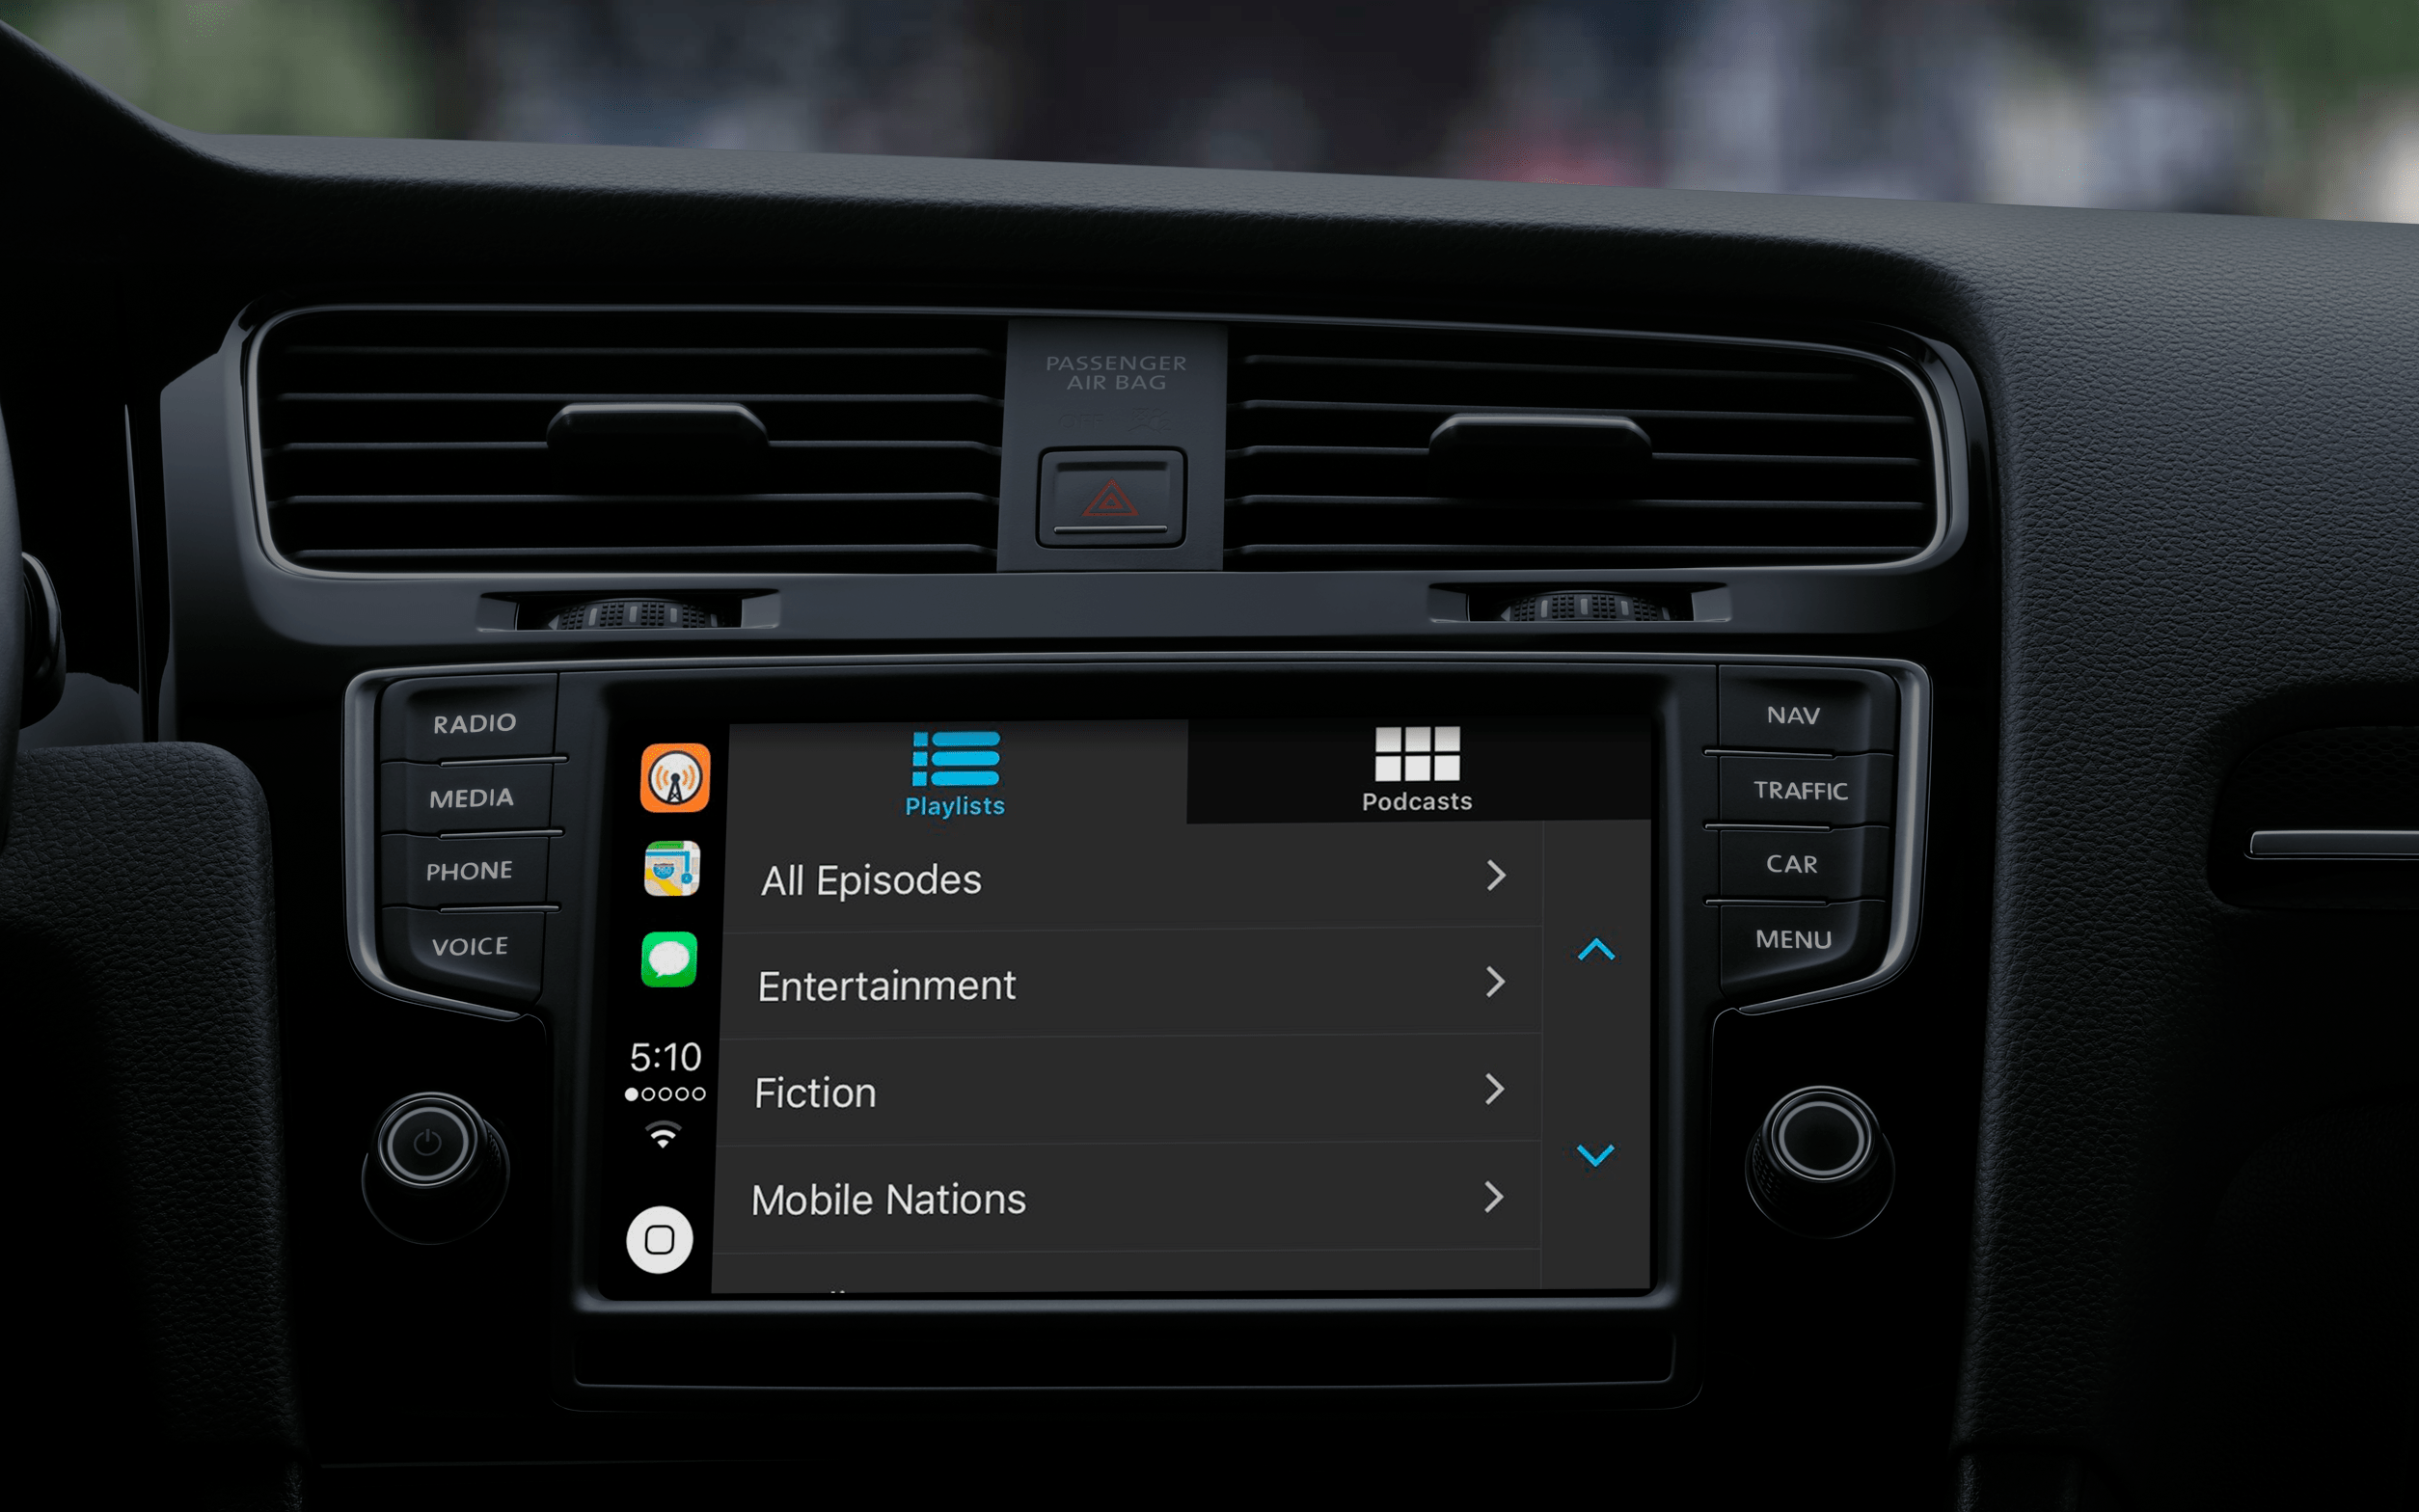 Apps supported by apple CarPlay: Overcast